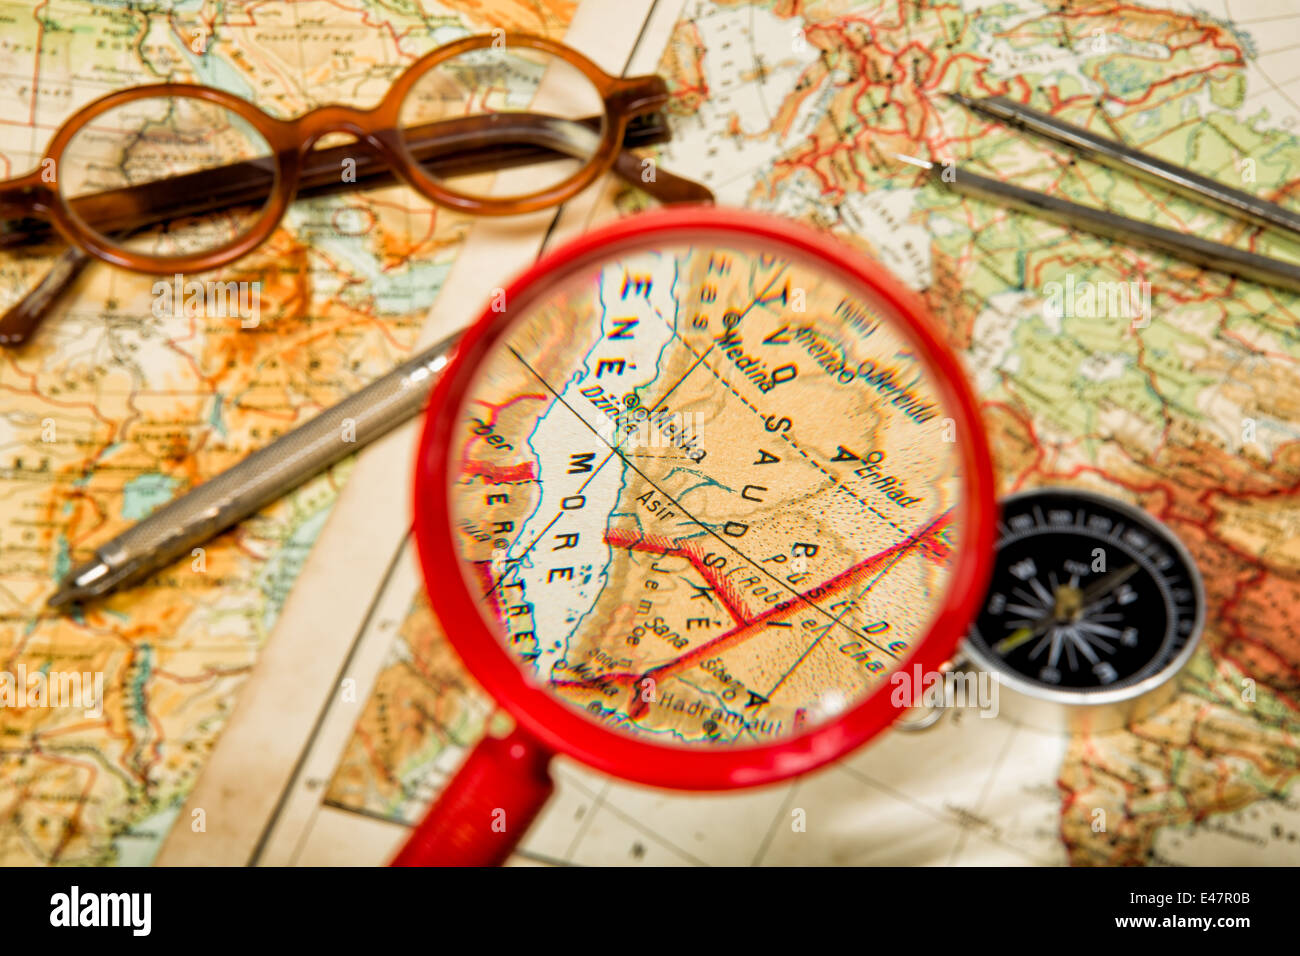 Traveling in the history is an important part of education - Stock Image